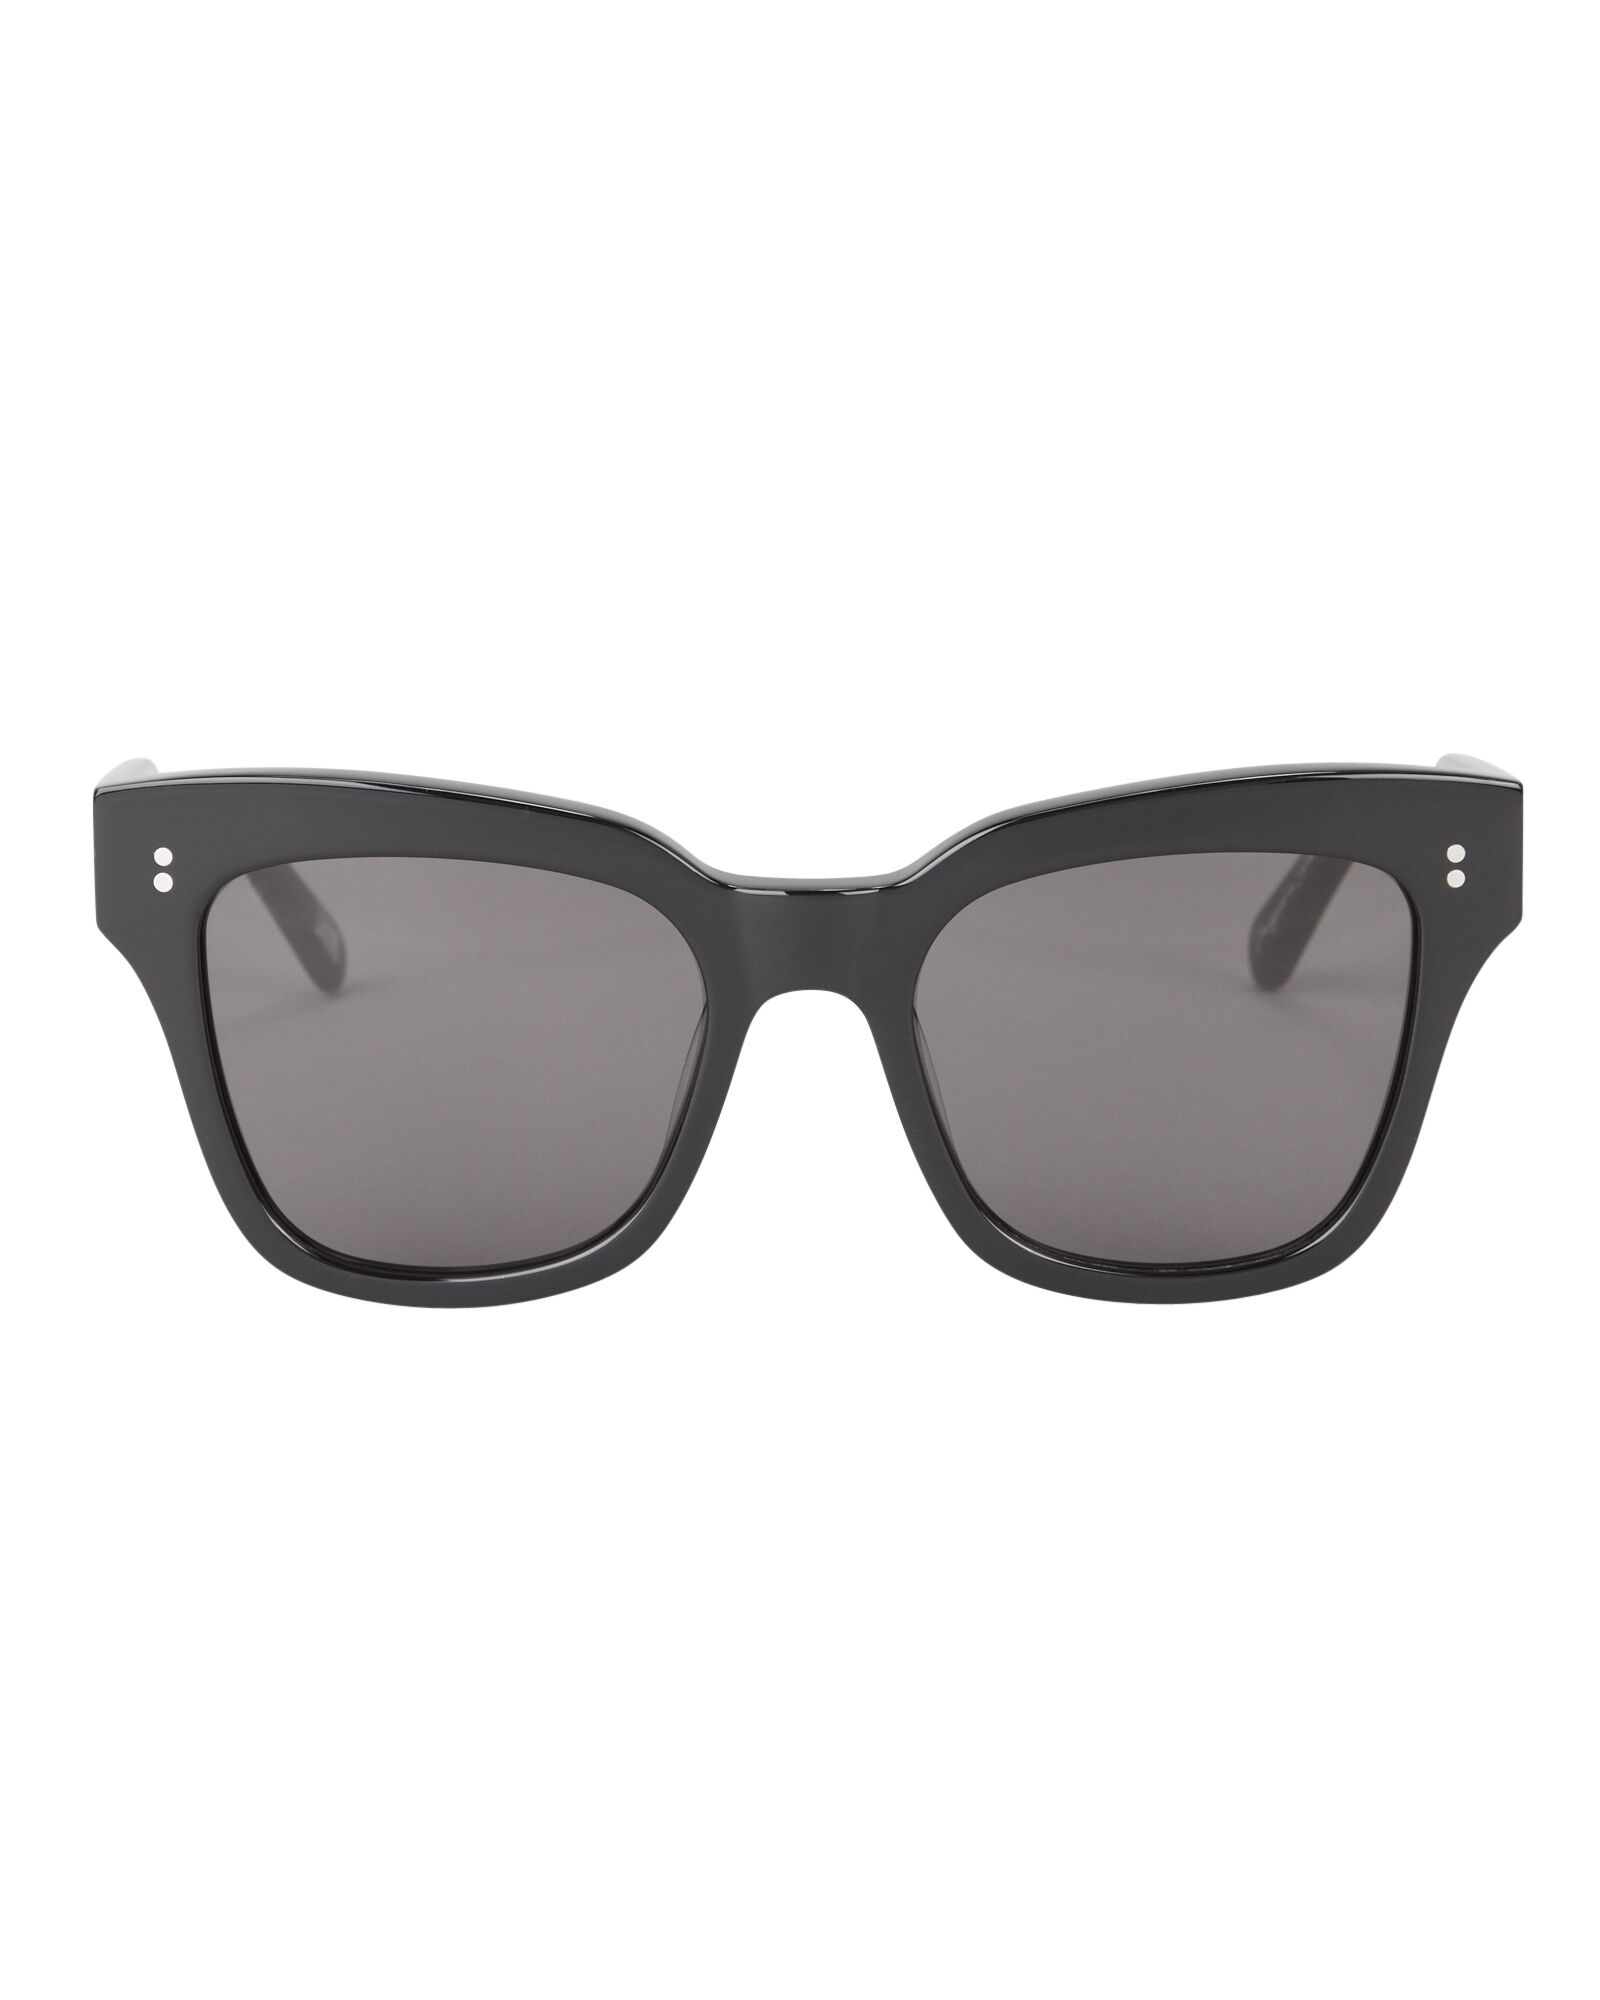 005 Berry Sunglasses, BLACK ACETATE, hi-res